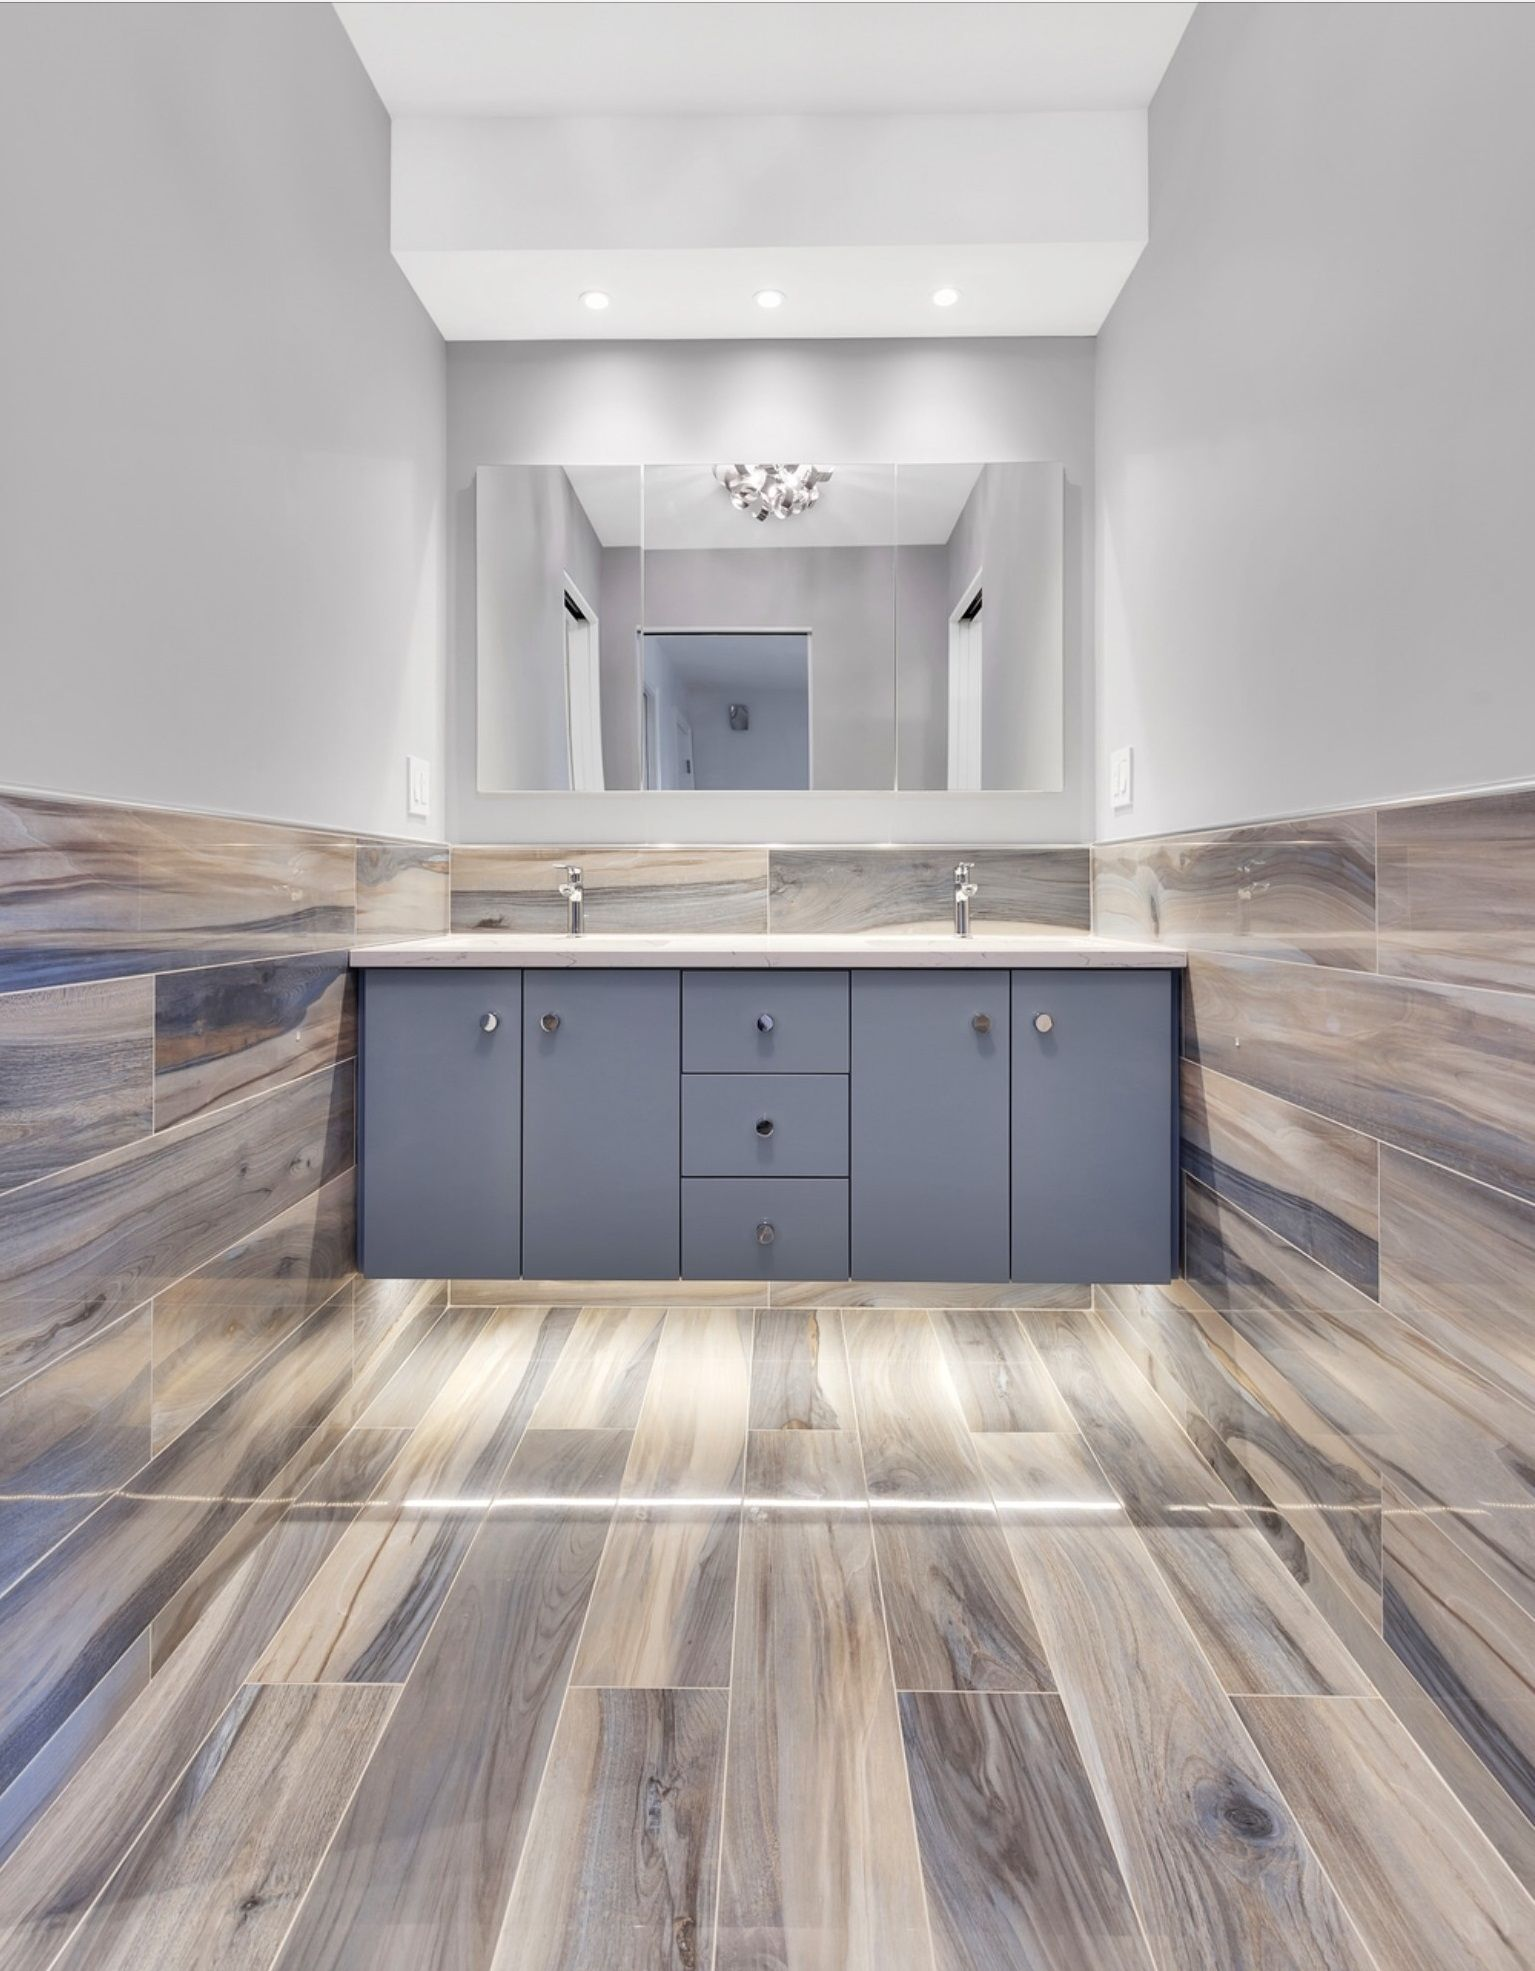 Artistic Tile I Our Wood Look Kauri Plank In Tasman Blue Adds Refinement And Warmth To This Upper East Side Ny Master Des House Flooring Wood Tile Floors Home